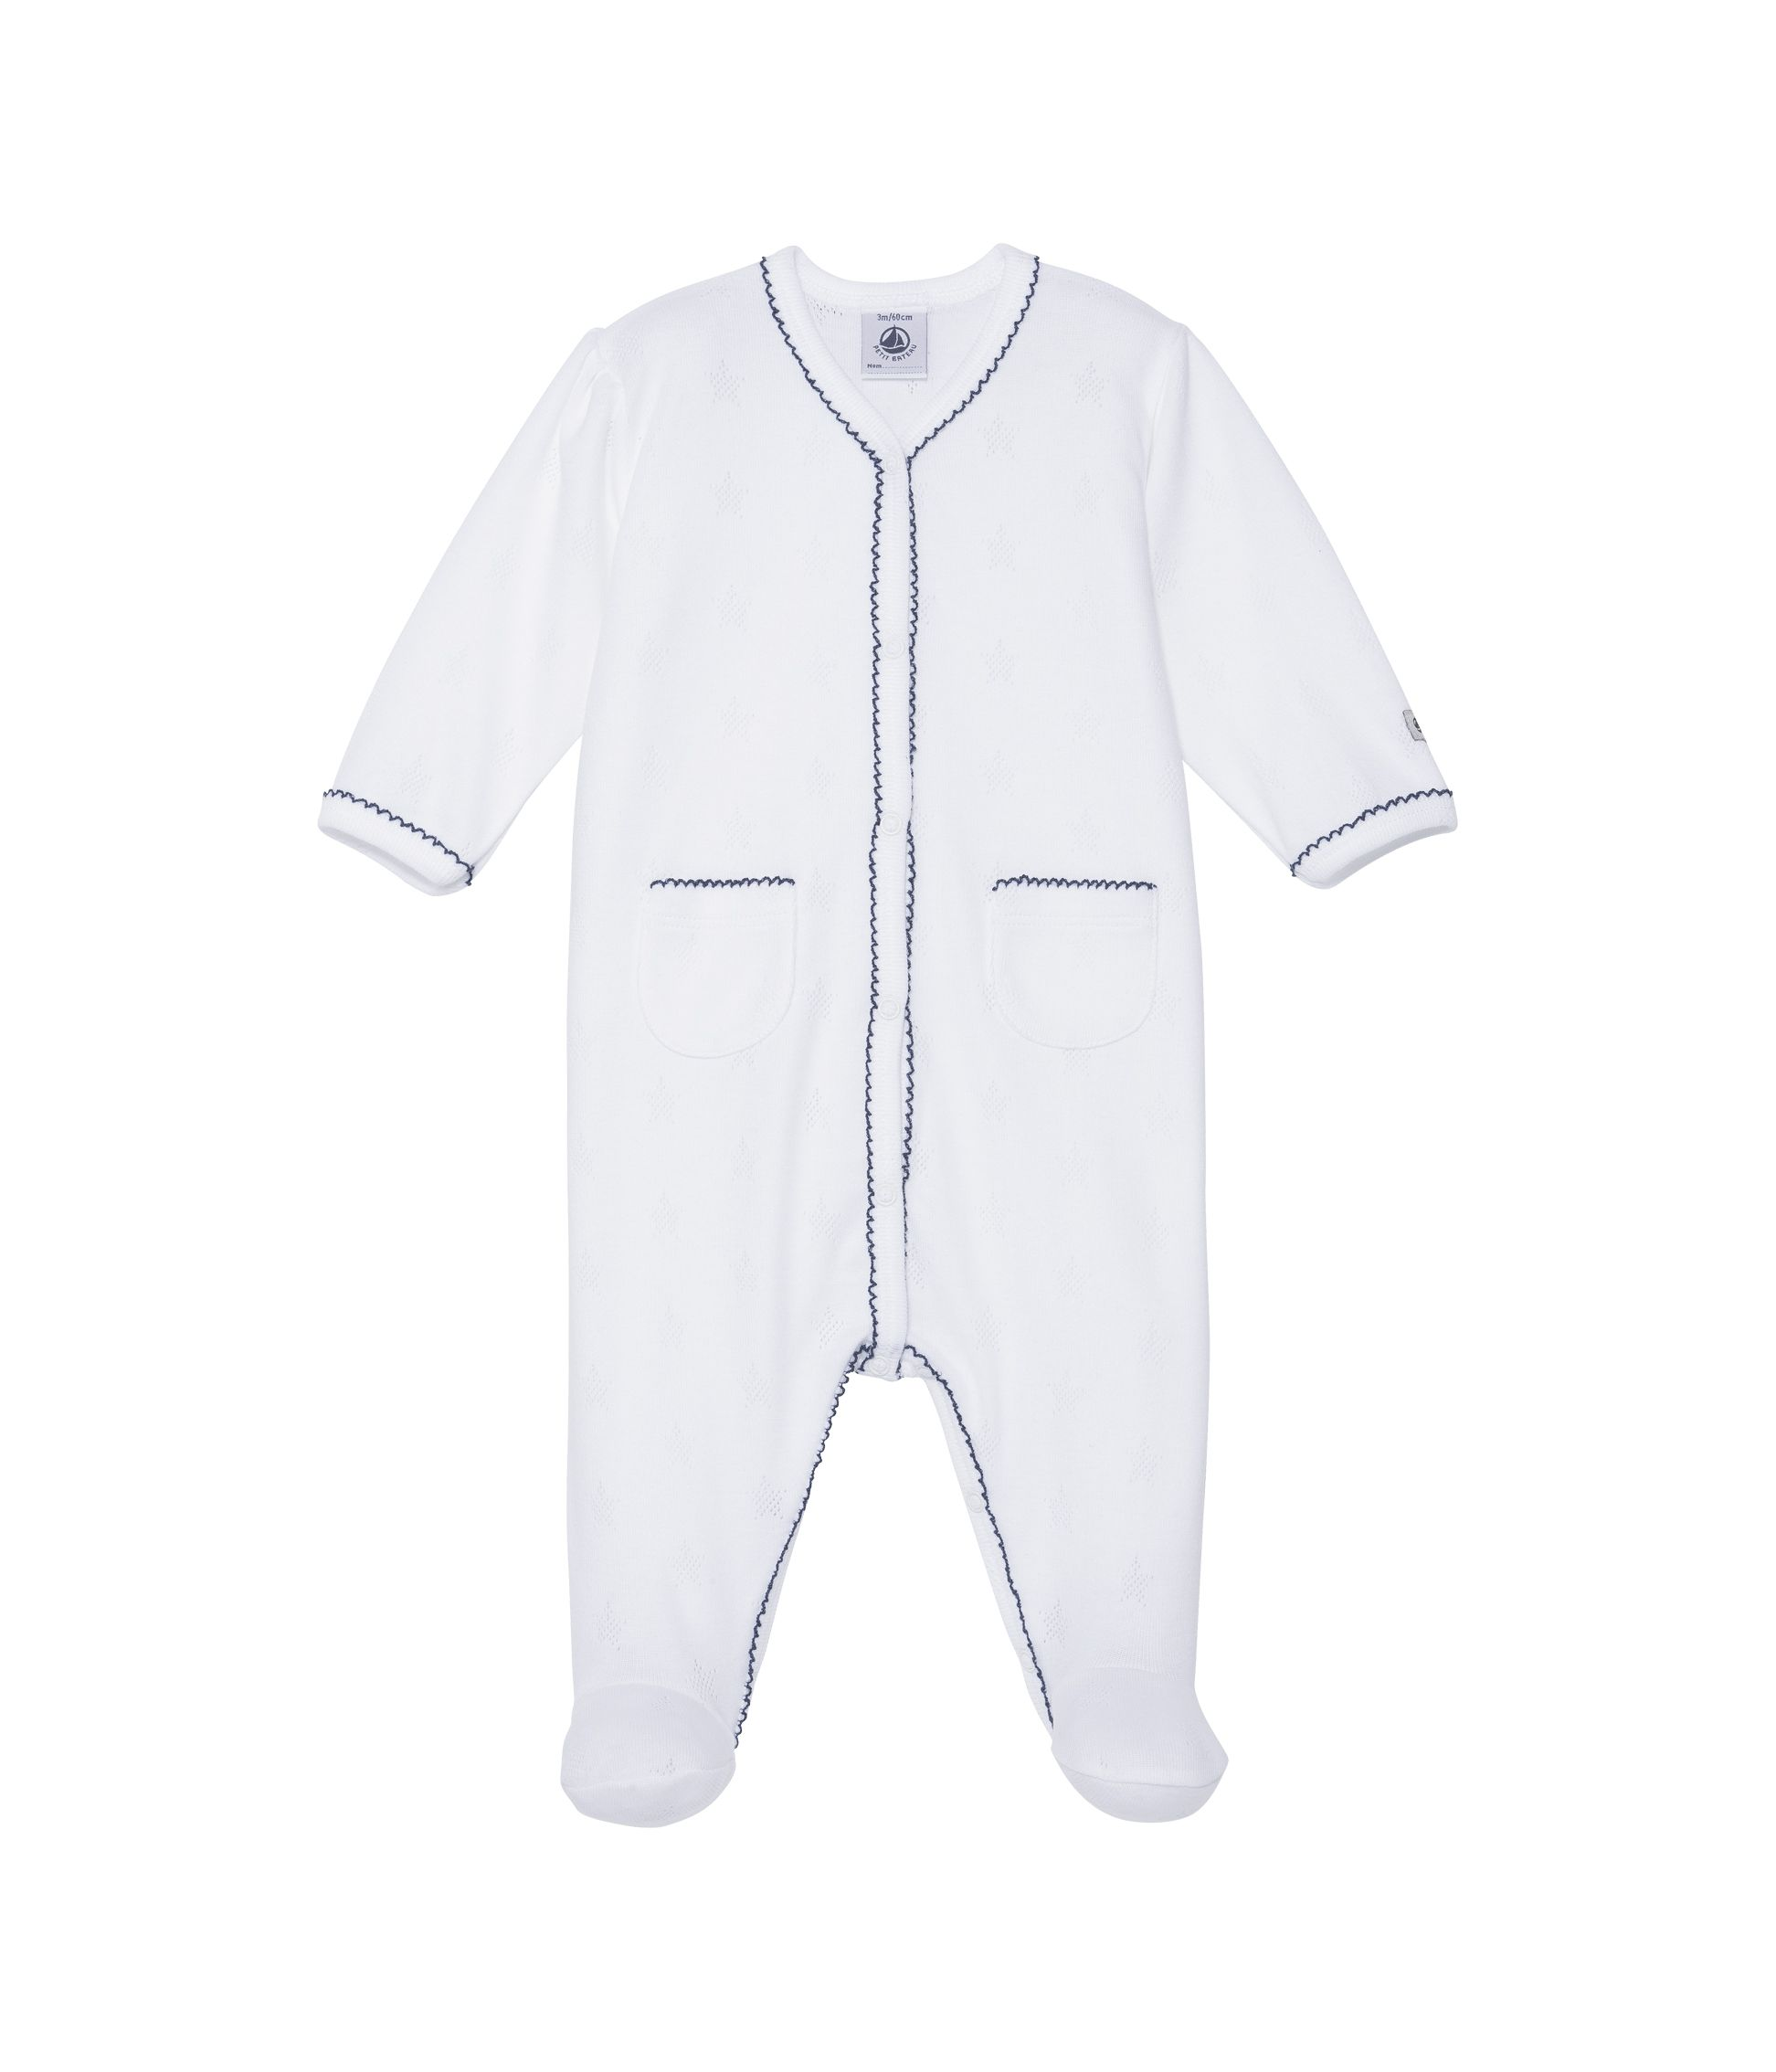 Baby girls sleepsuit